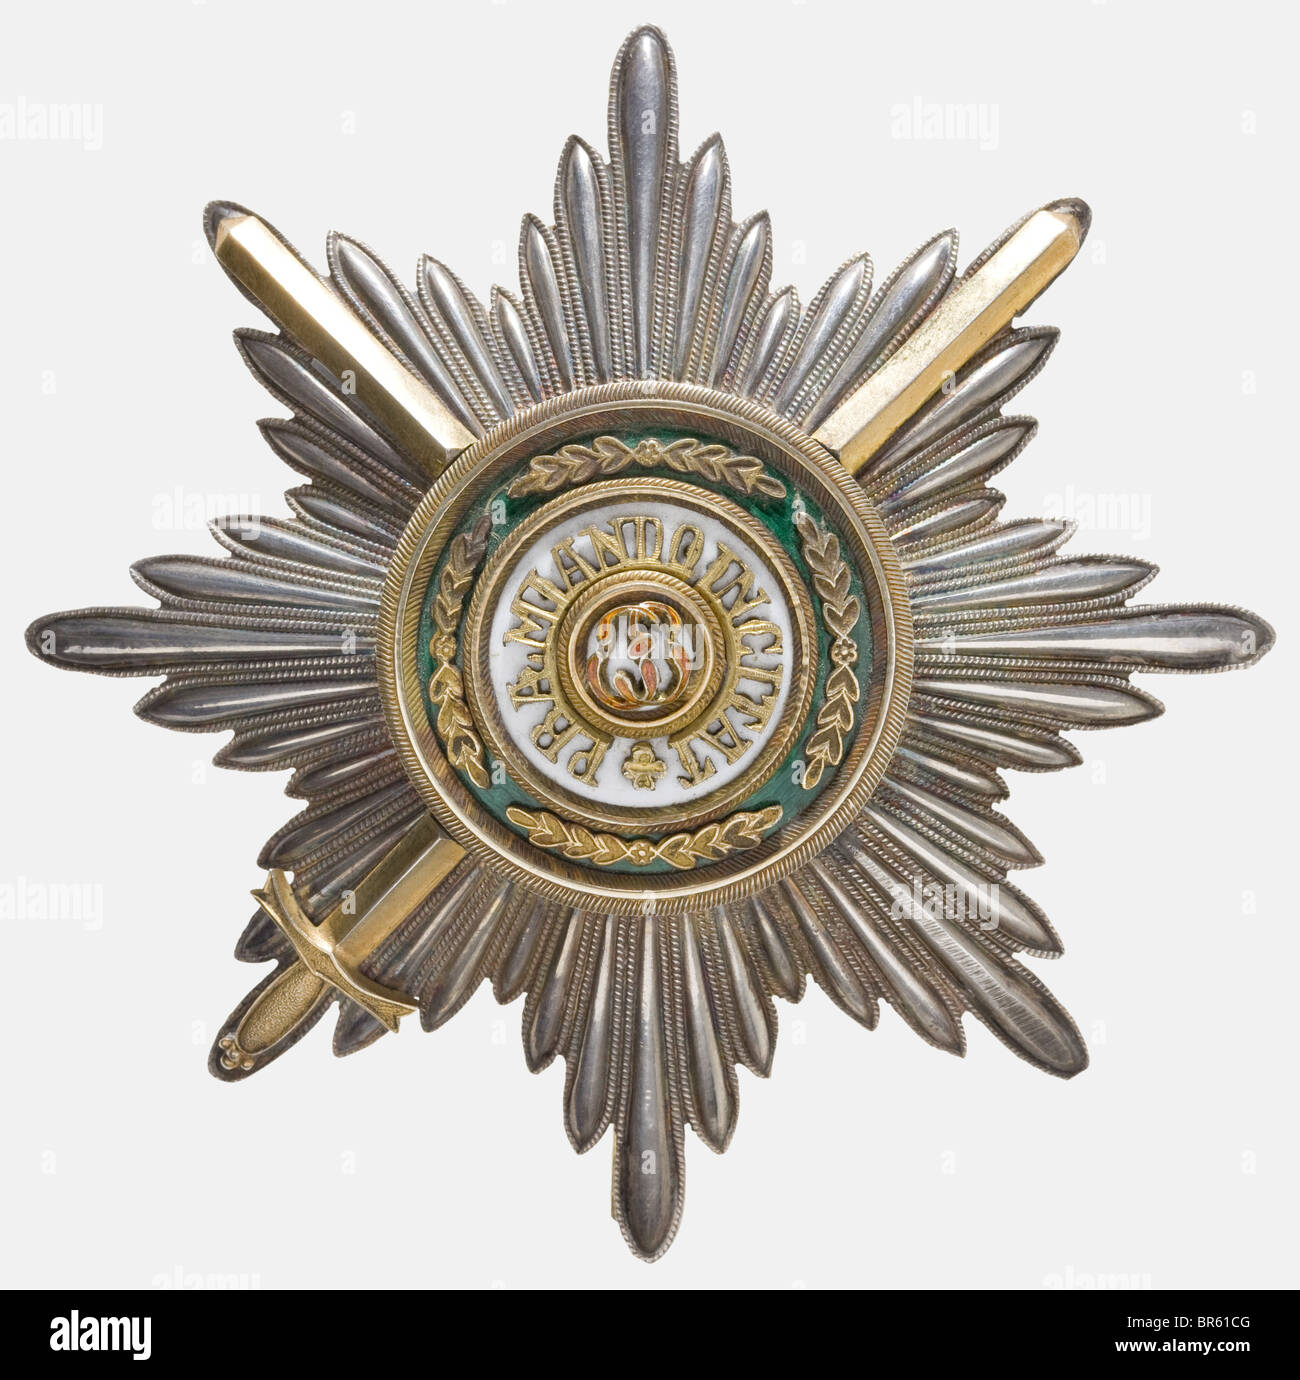 Major General N N Karepov 1860 1926 Order Of St Stanislaus